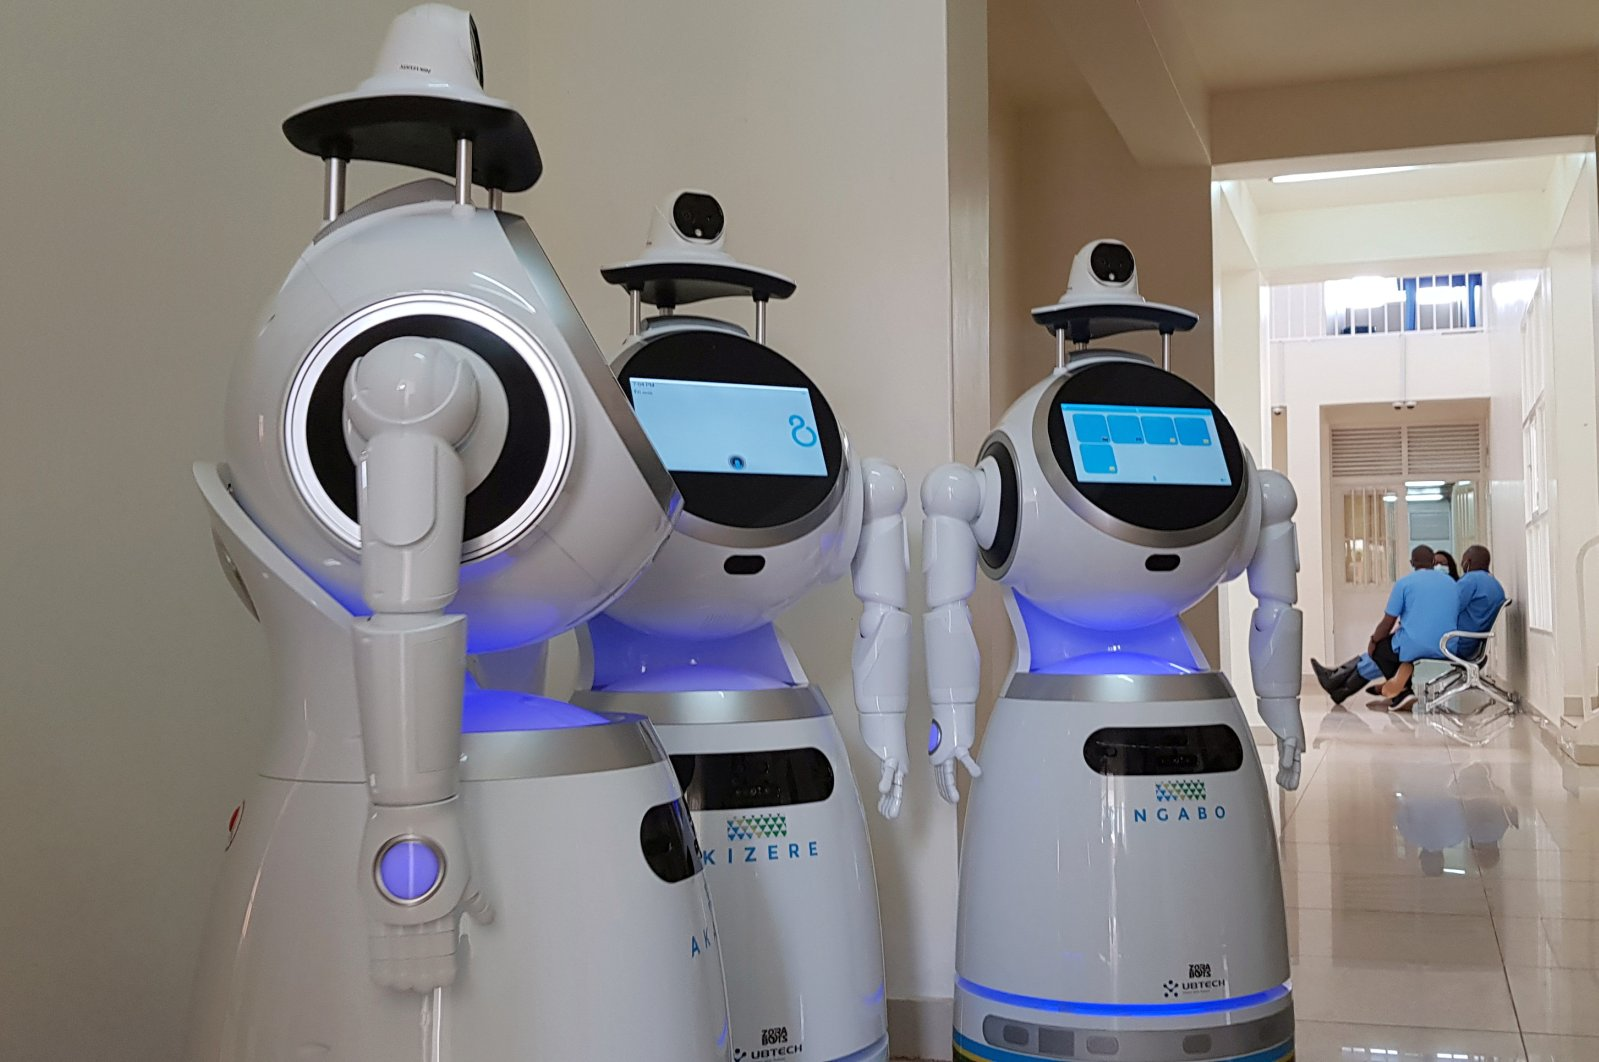 High-tech robots developed by Zora Bots, a Belgium-based company, and donated by the United Nations Development Program (UNDP) are seen during a demonstration at the Kanyinya treatment center that treats COVID-19 patients, in Kigali, Rwanda, May 29, 2020. (REUTERS Photo)